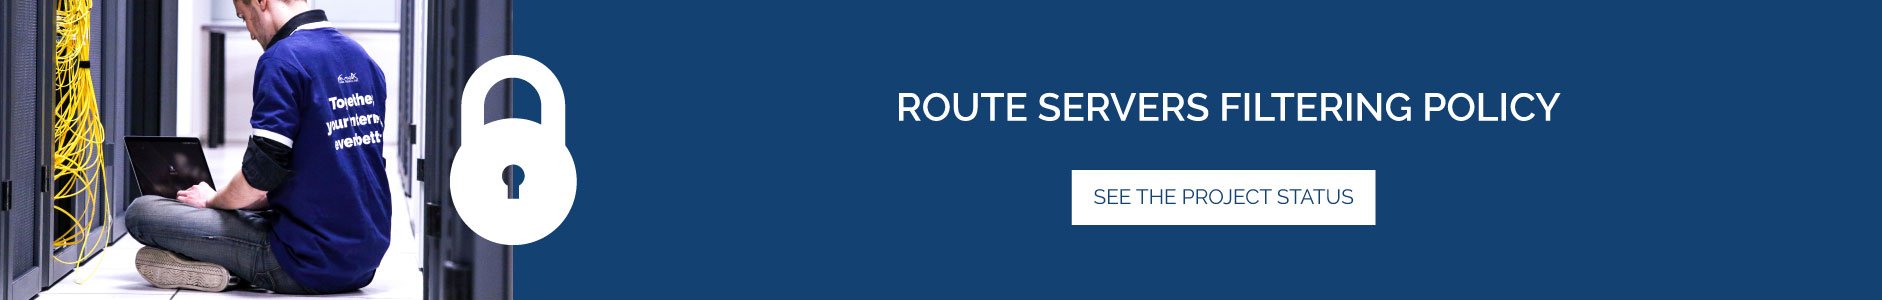 Route servers filtering policy: current status and next steps